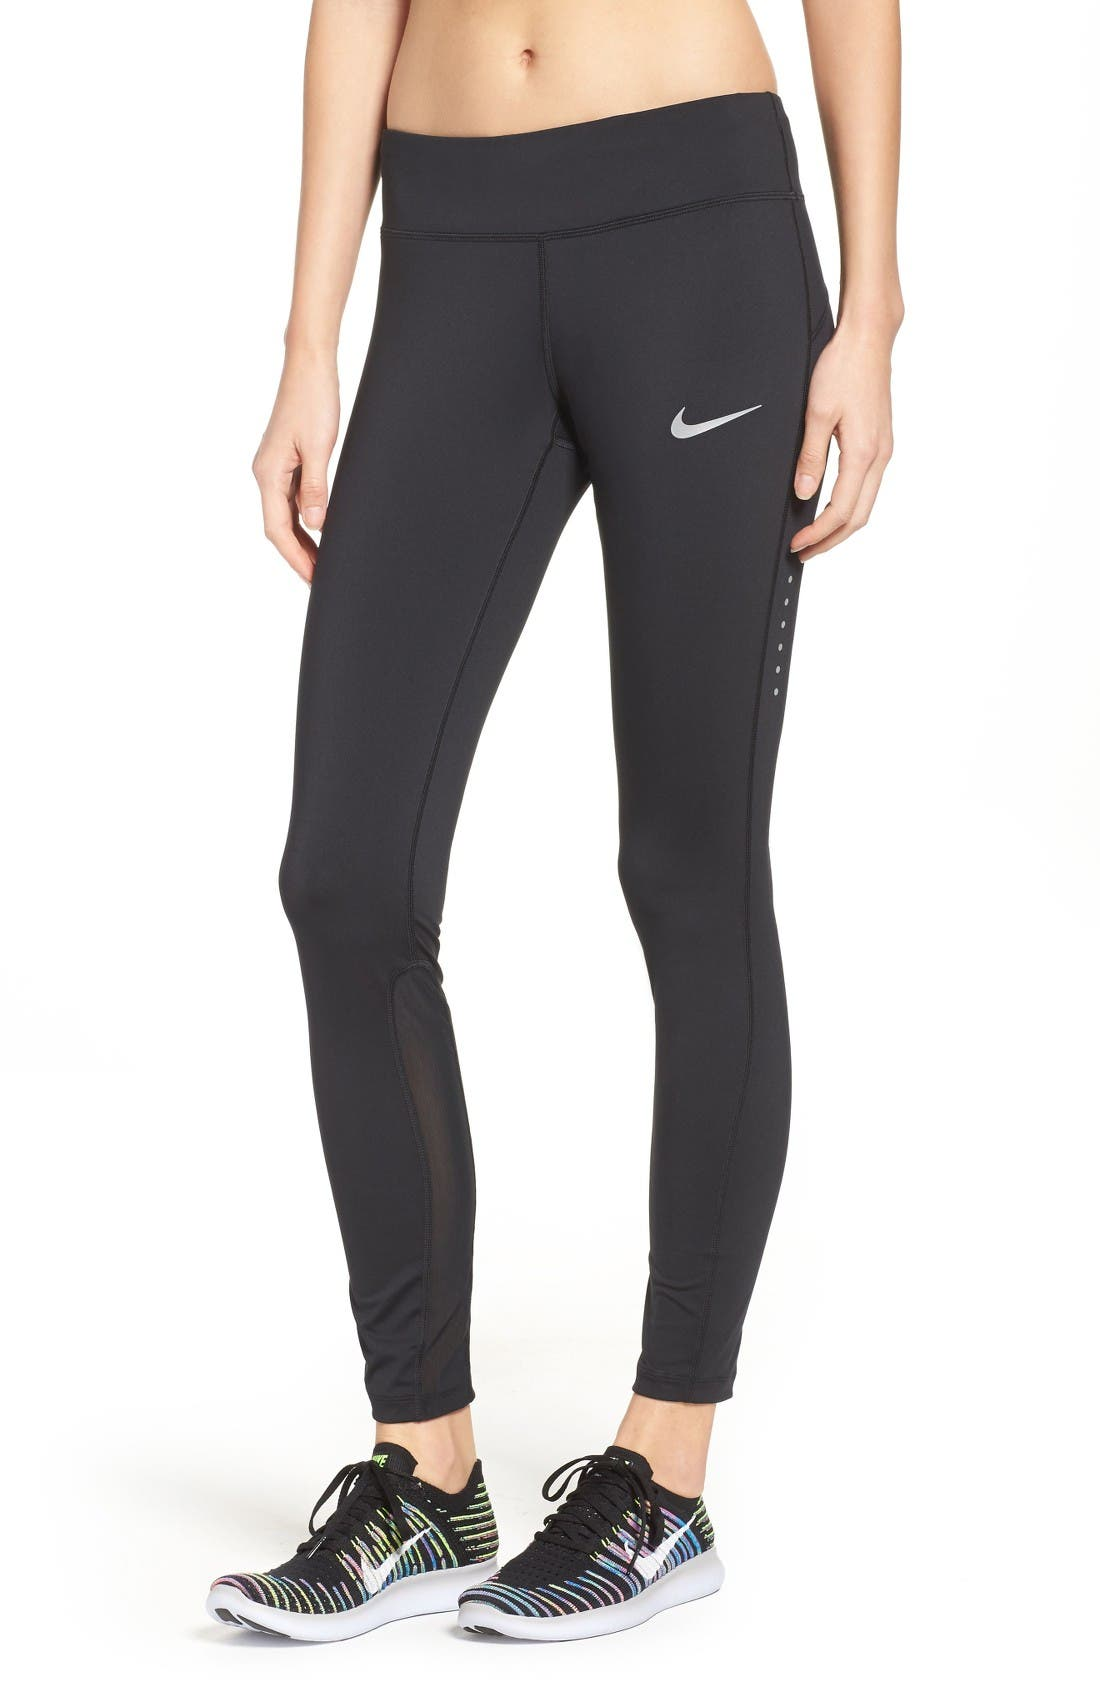 Alternate Image 1 Selected - Nike Power Epic Running Tights